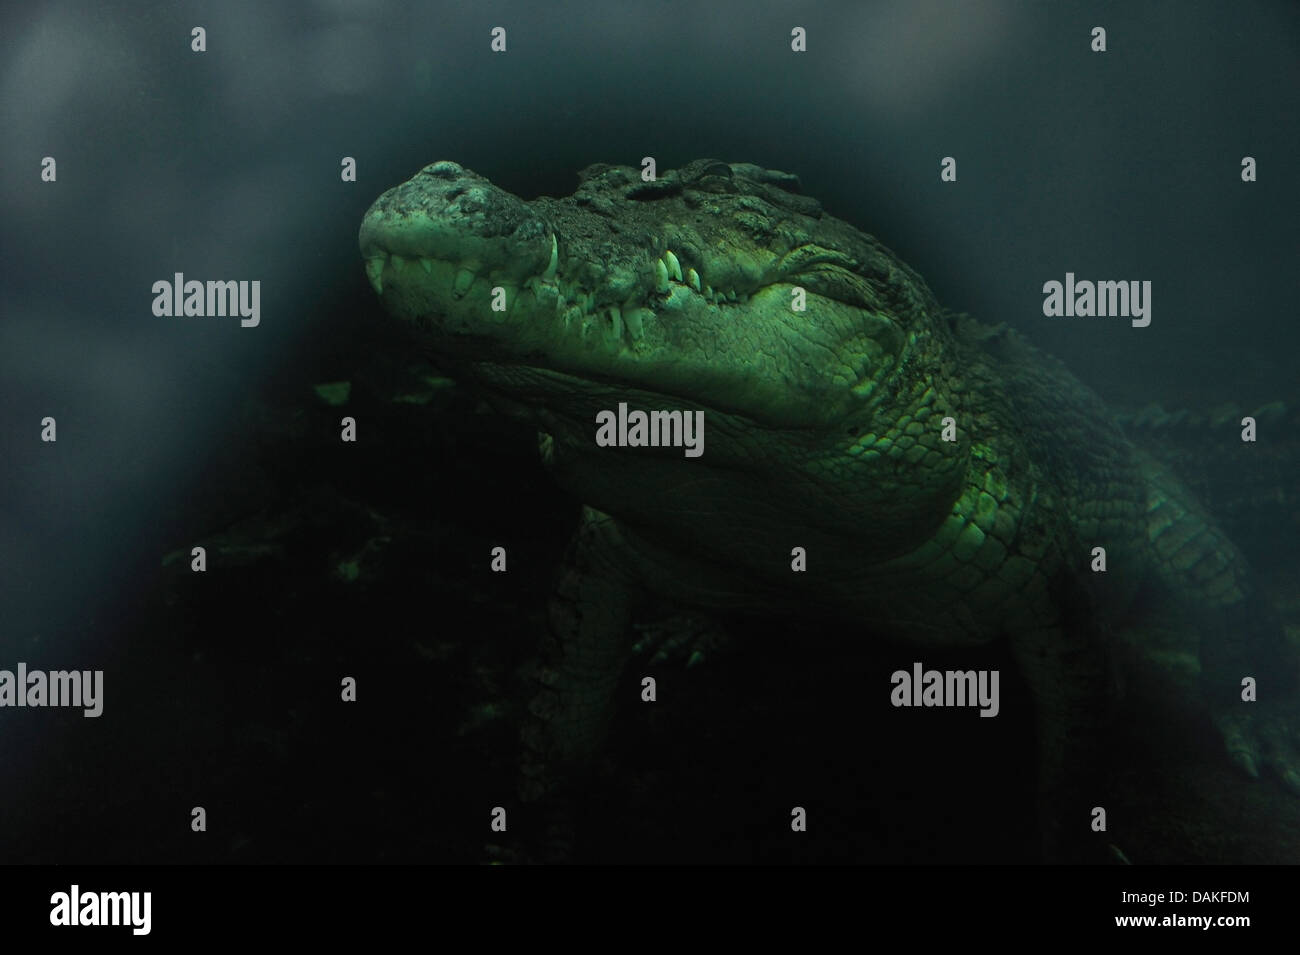 Estuarine saltwater crocodile, (Crocodylus porosus)Australia. Photo taken under water - Stock Image